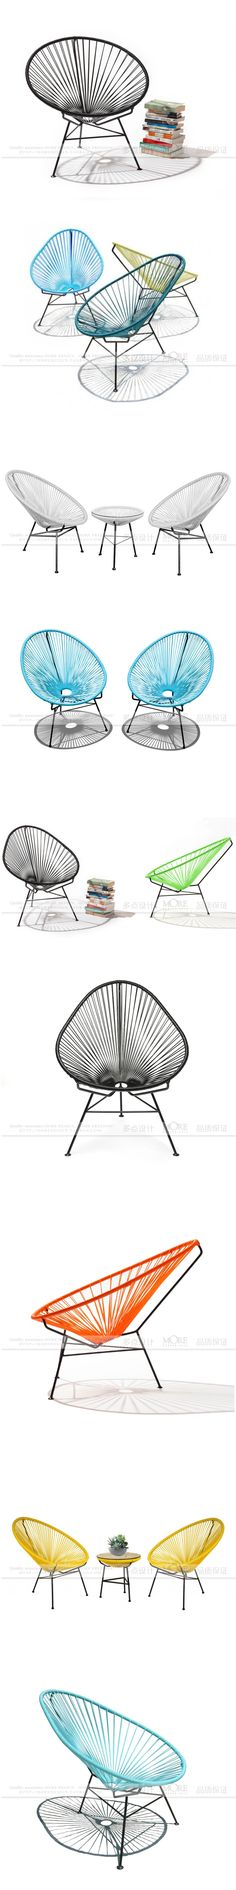 Contract Outdoor Furniture Creative lulu lounge chair - janus et cie | deck | pinterest | chairs